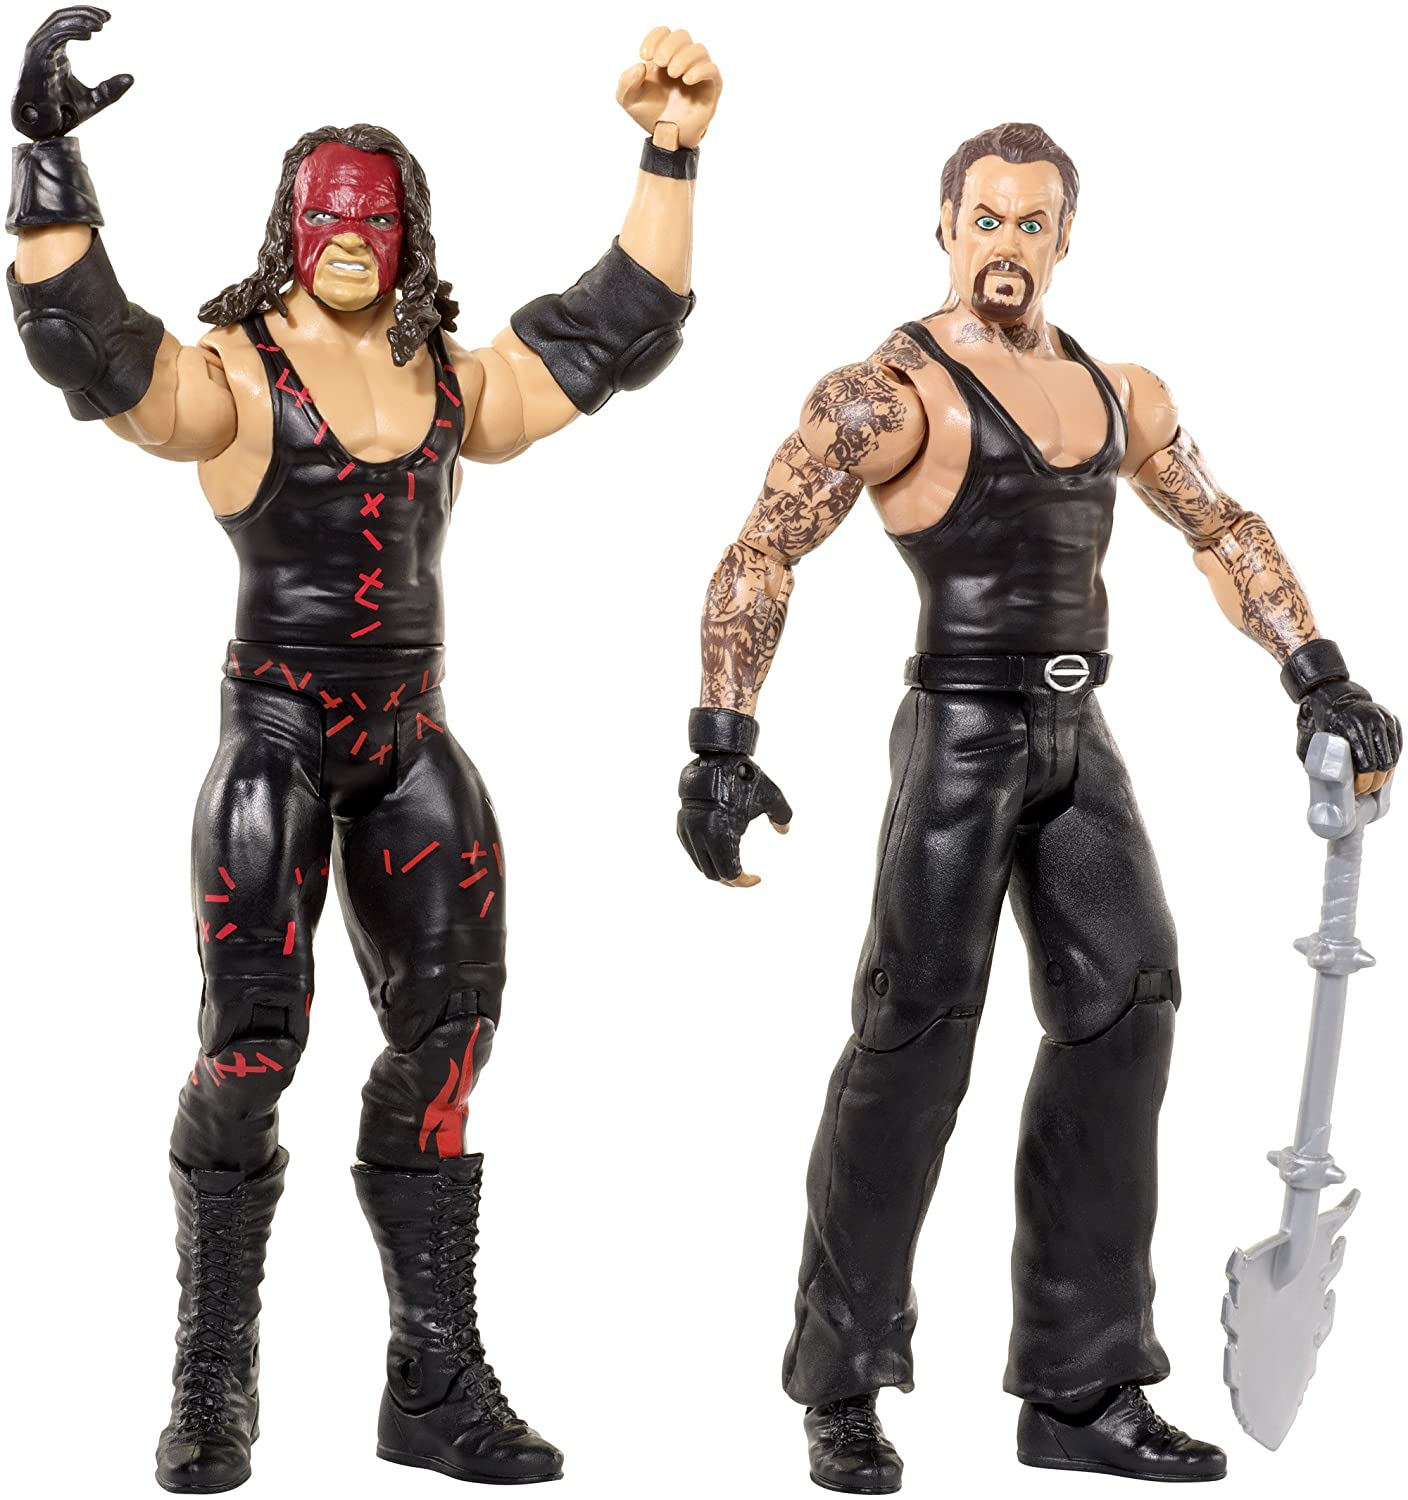 Wwe Action Figures Kane: WWE Kane & Undertaker Action Figure (2 Pack) Toy Gift NEW